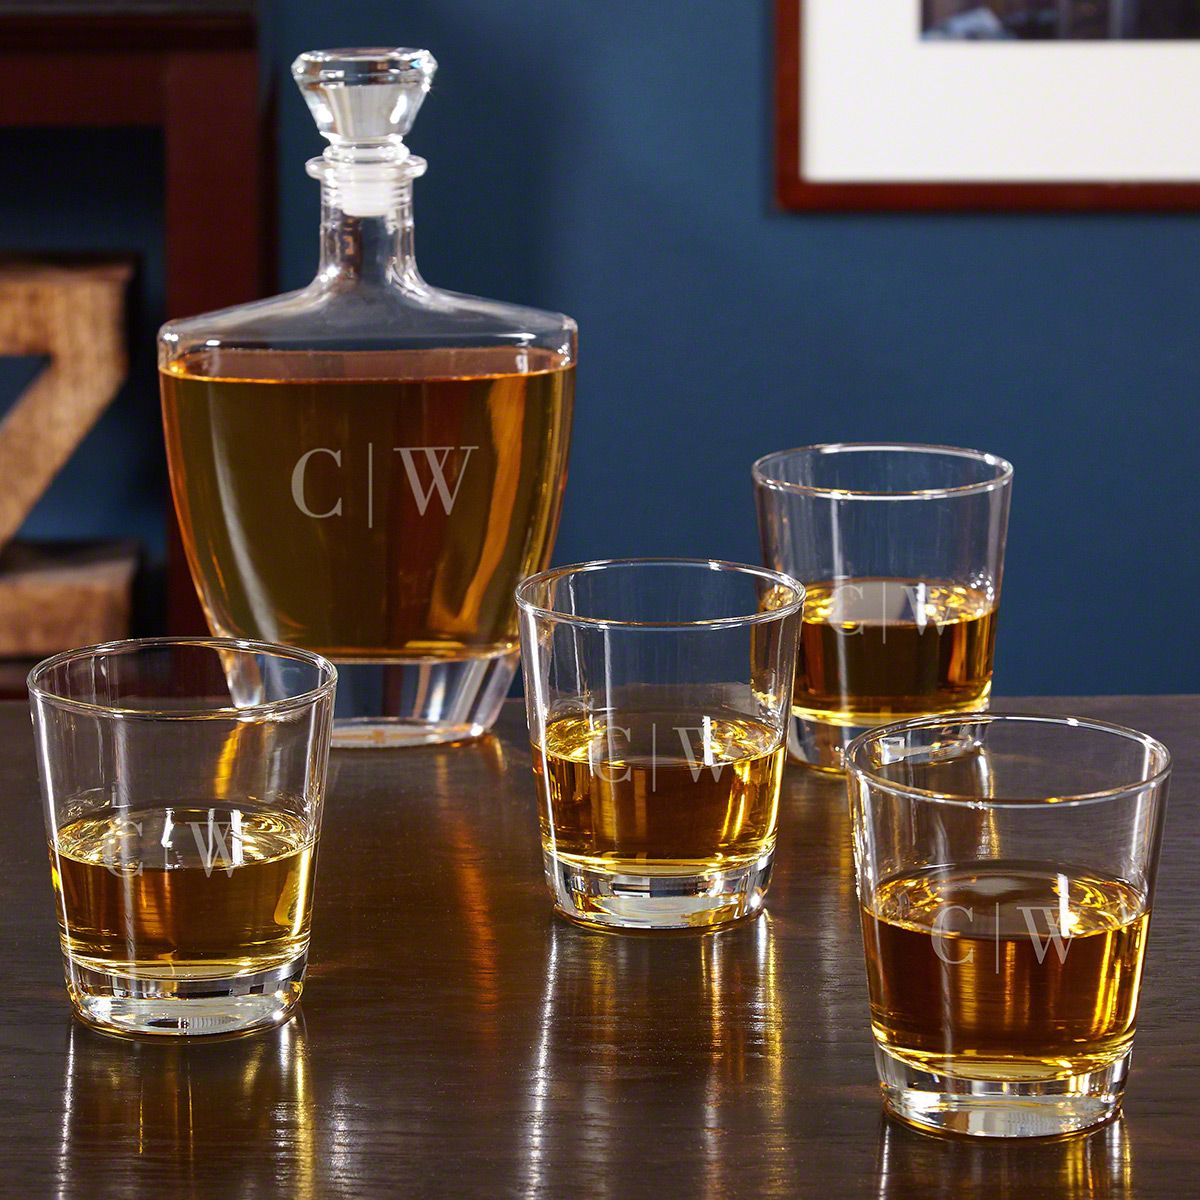 Quinton Monogrammed Decanter Set with Rocks Glasses